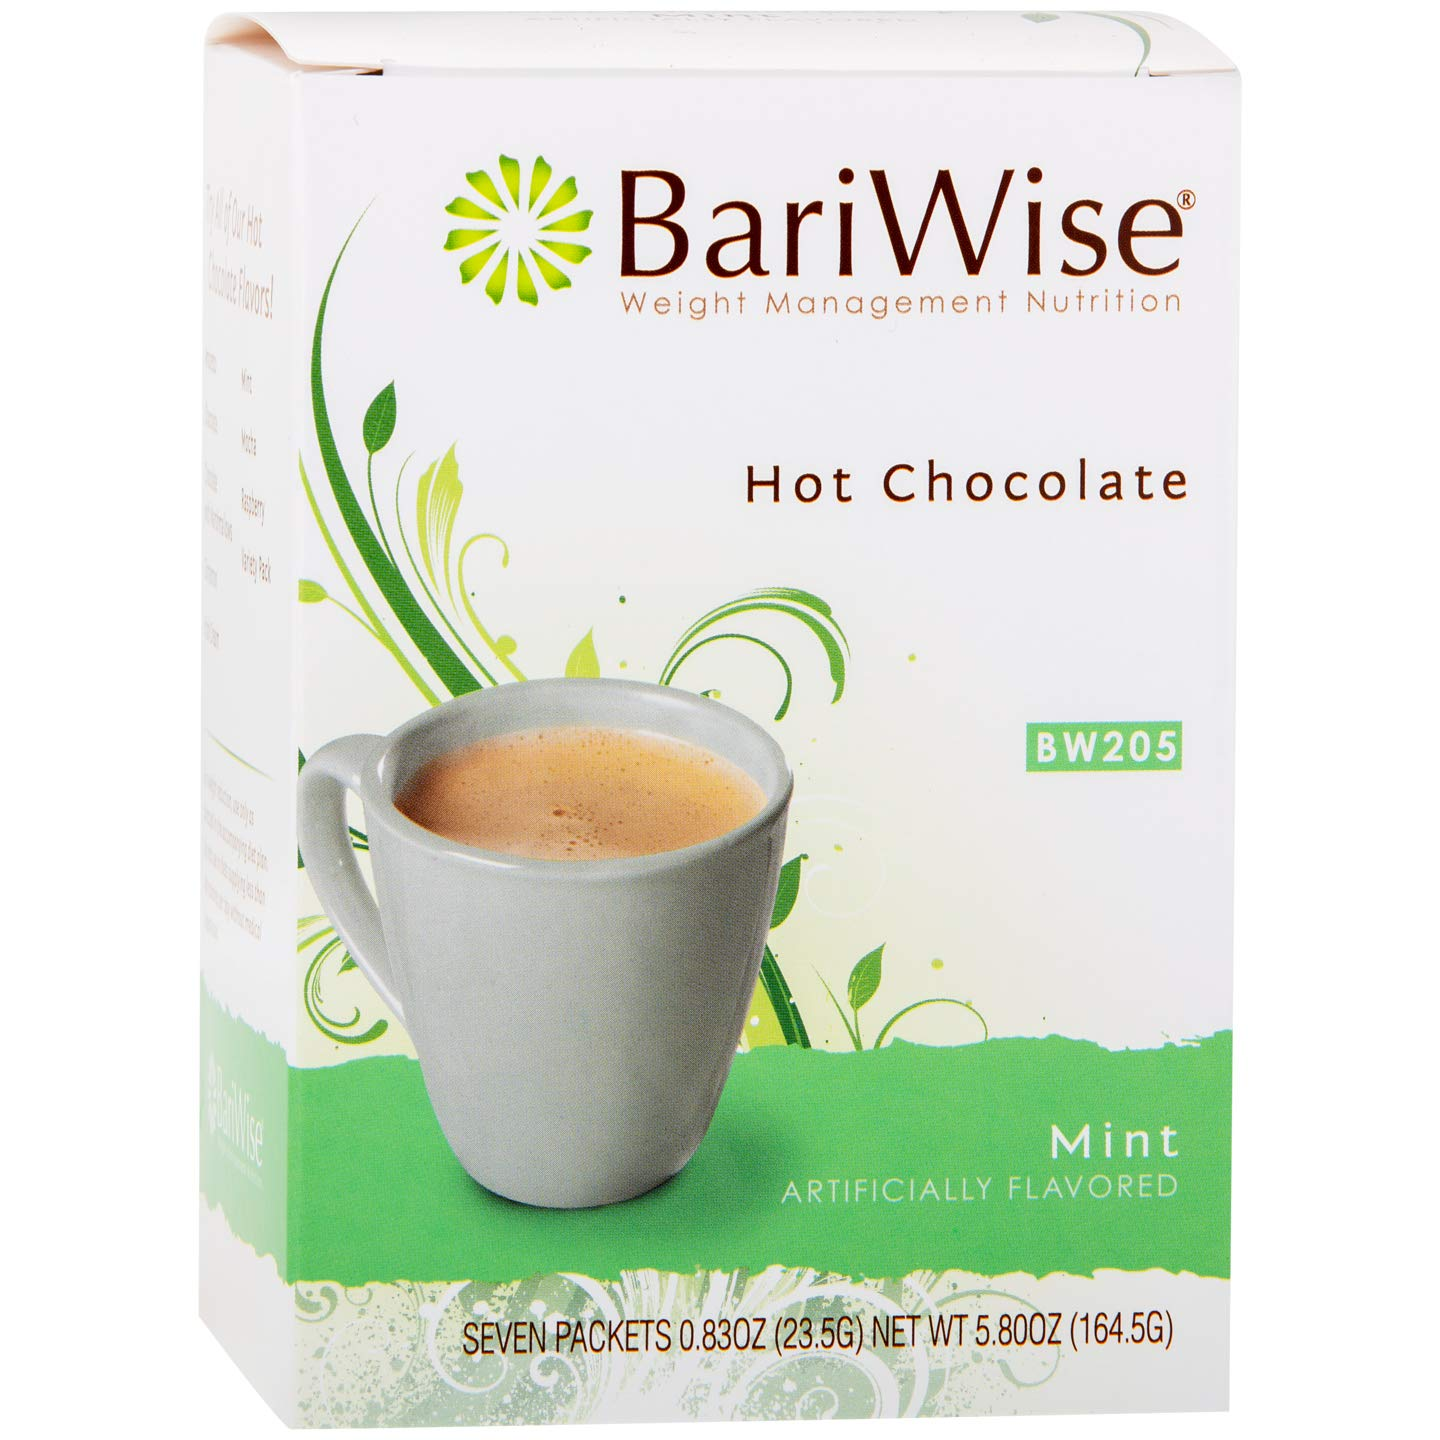 BariWise High Protein Hot Cocoa - Instant Low-Carb, Low Calorie Hot Chocolate Mix with 15g Protein - Mint (7 Count)